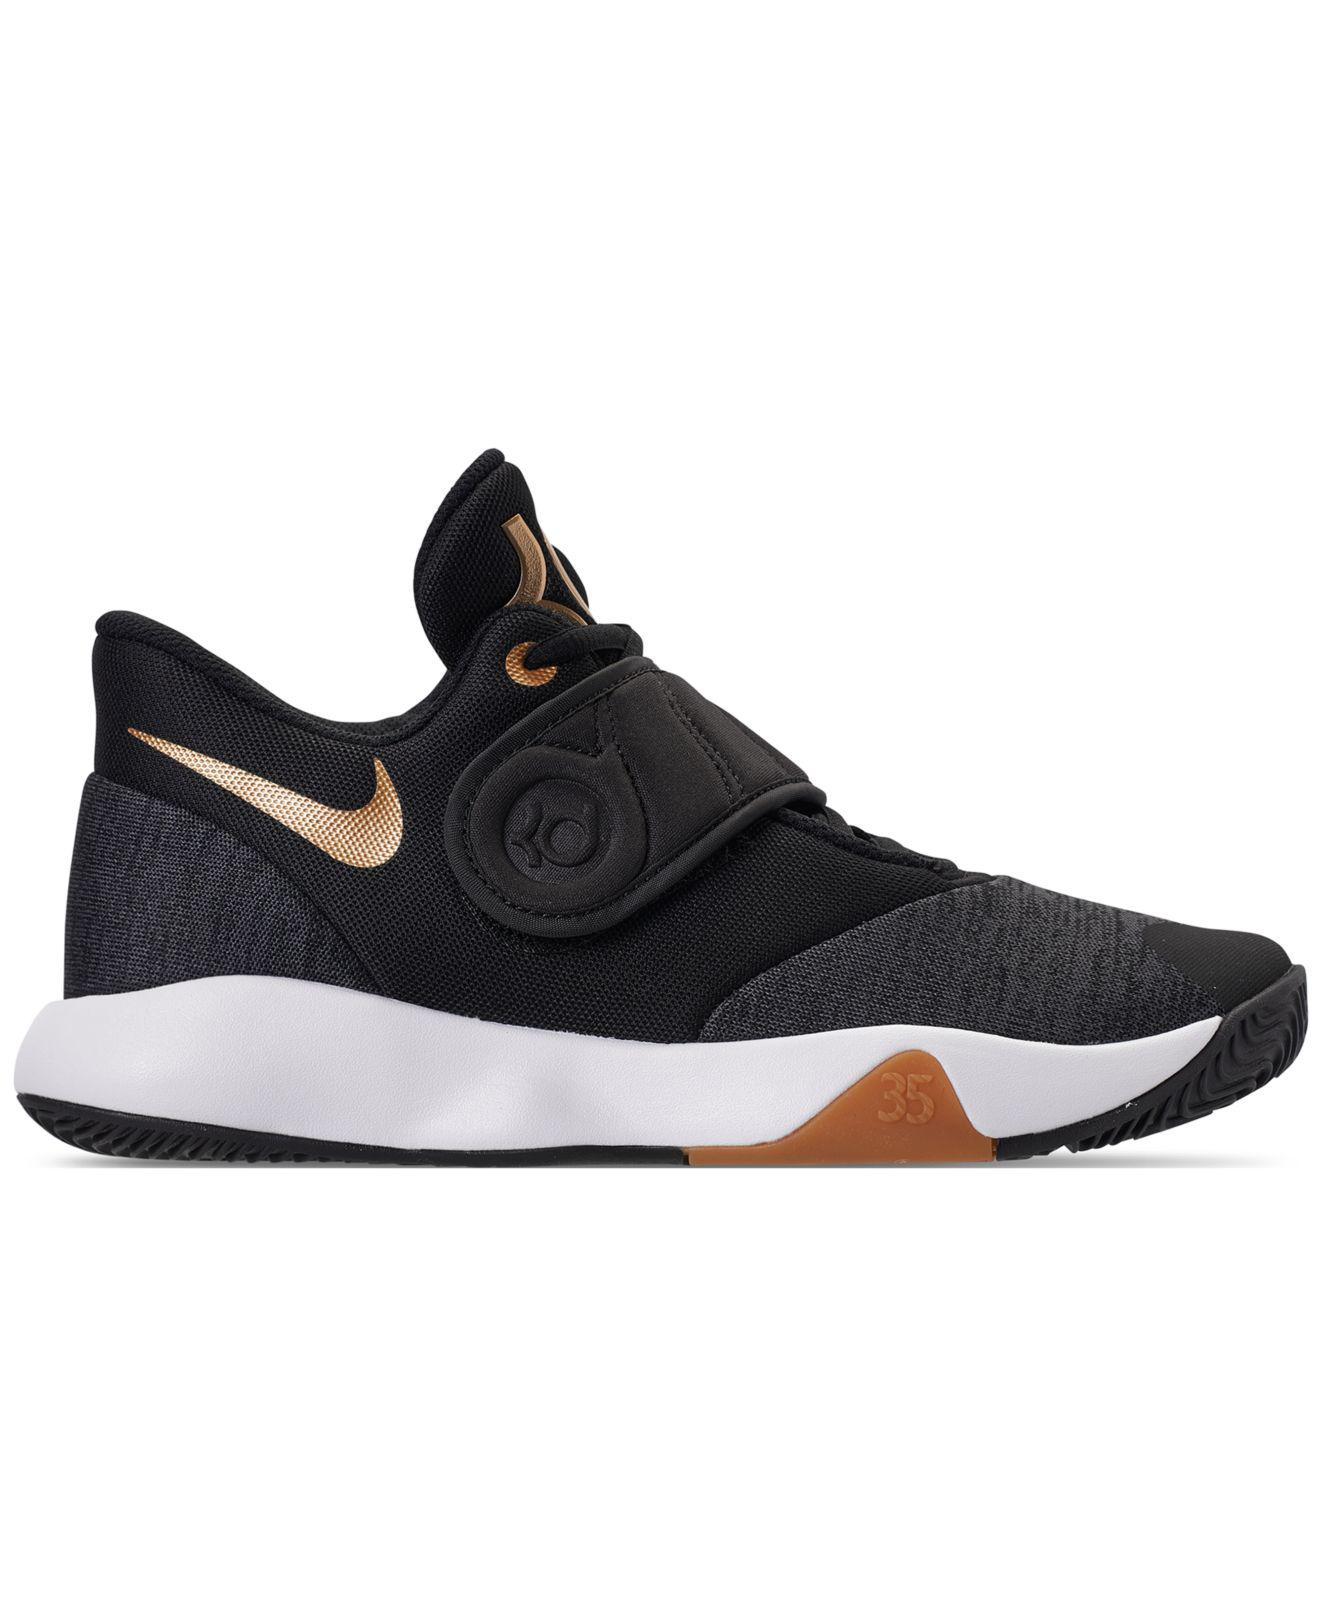 8433a11a1360 Nike KD Trey 5 VI Basketball Shoe sneakers for drawing t